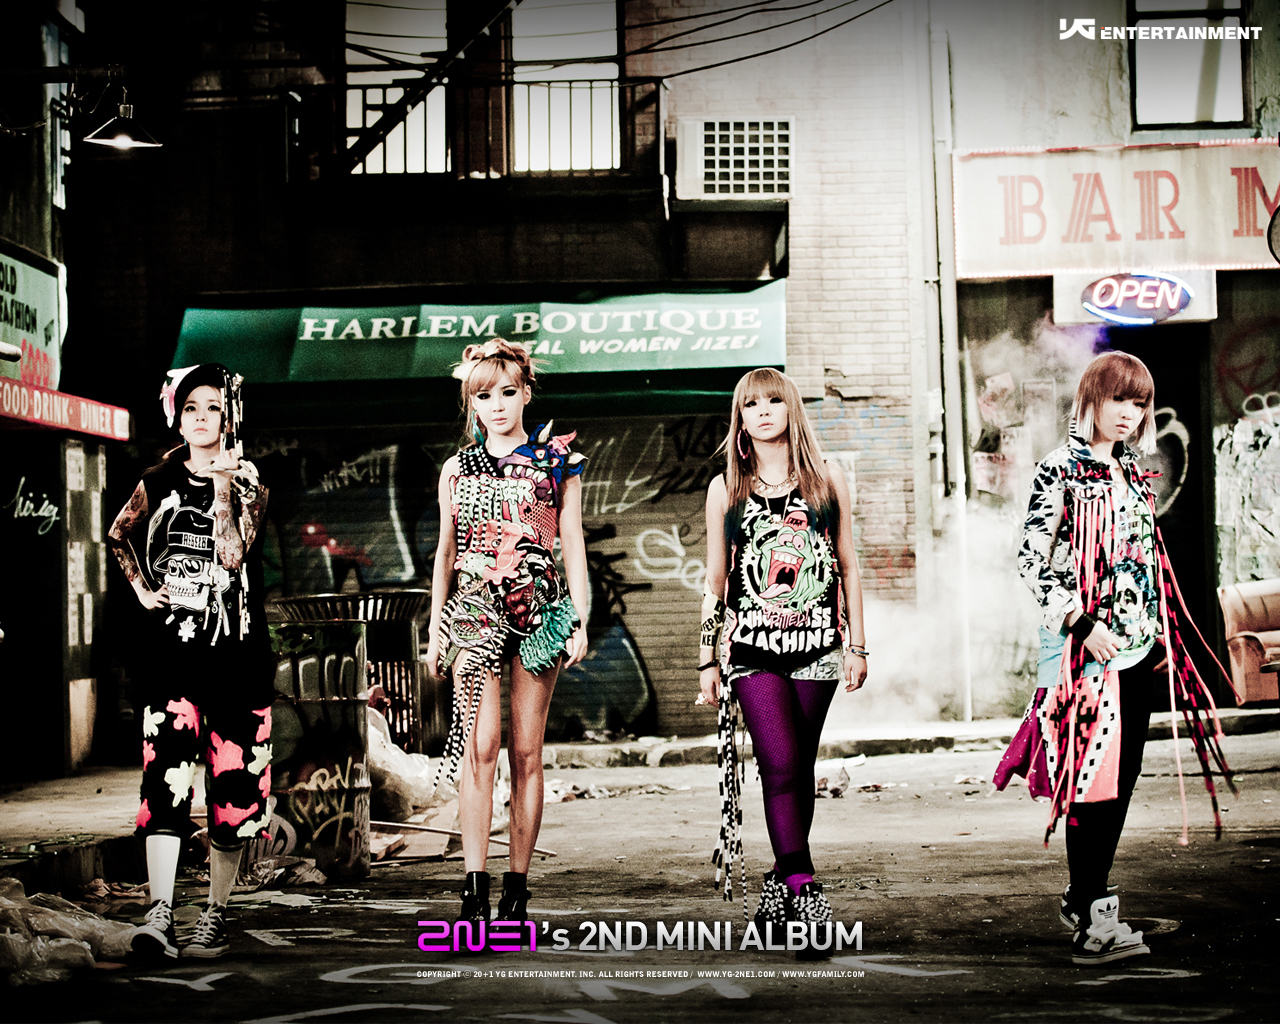 2NE1 HD wallpapers | Most beautiful places in the world ...